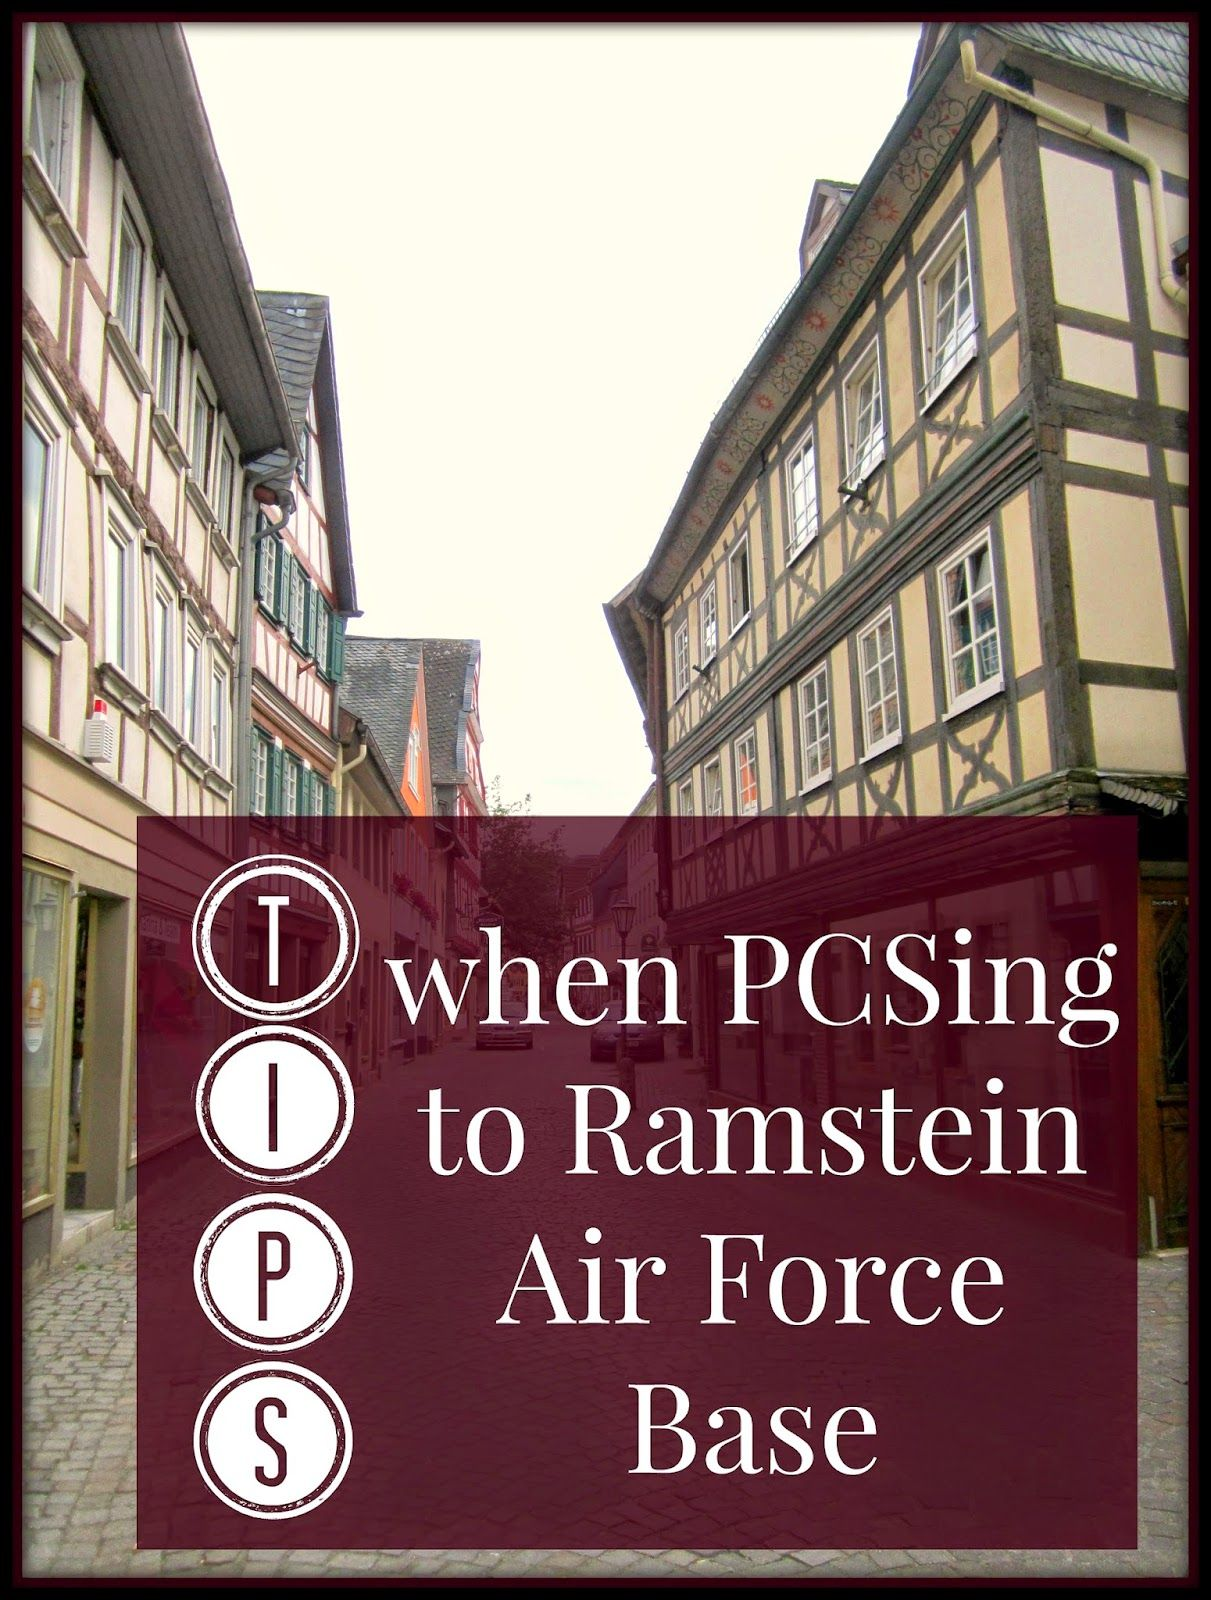 Are you PCSing to Ramstein AFB, Germany? Here are some suggestions